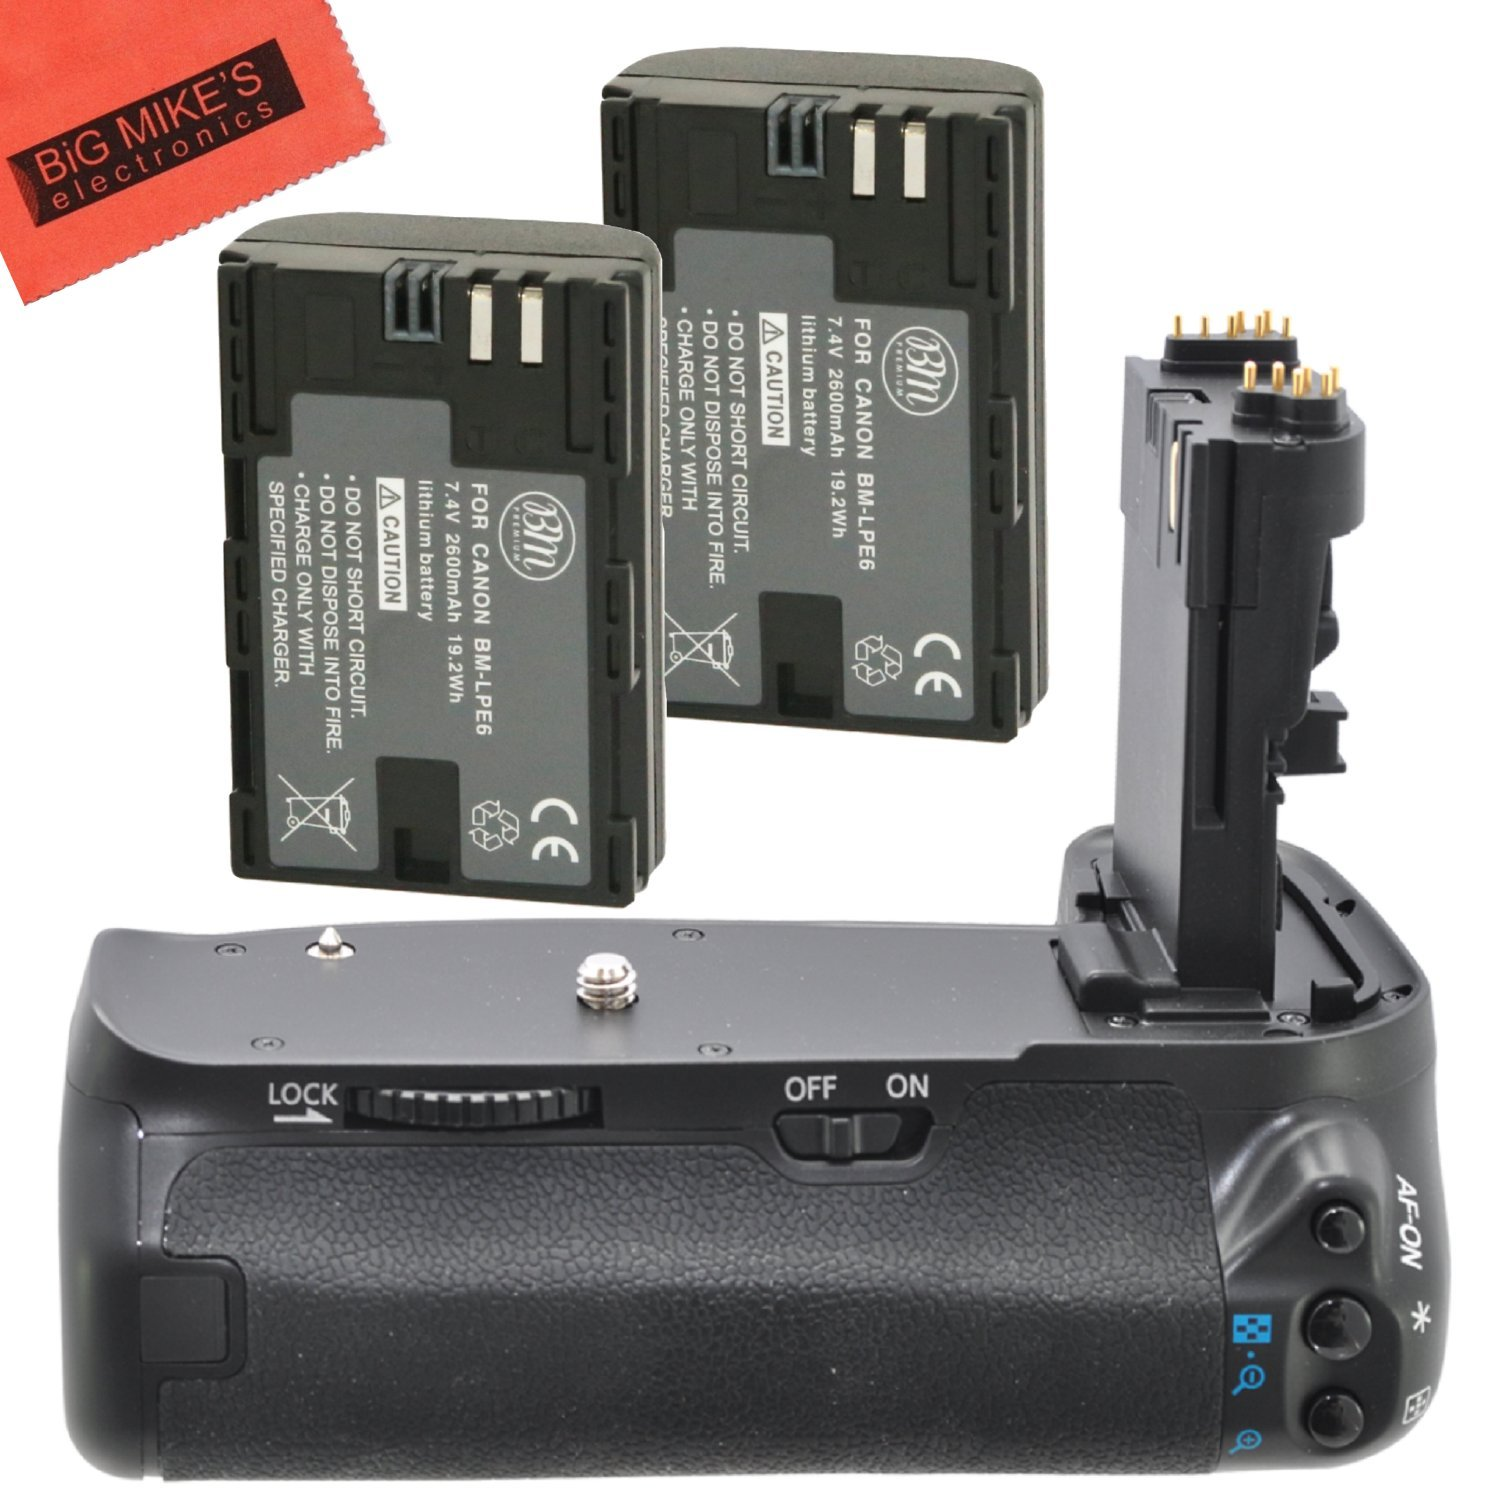 Battery Grip Kit for Canon EOS 70D EOS 80D Digital SLR Camera Includes Qty 2 BM Prmeium LP-E6 Batteries + BG-E14 Replacement Battery Grip